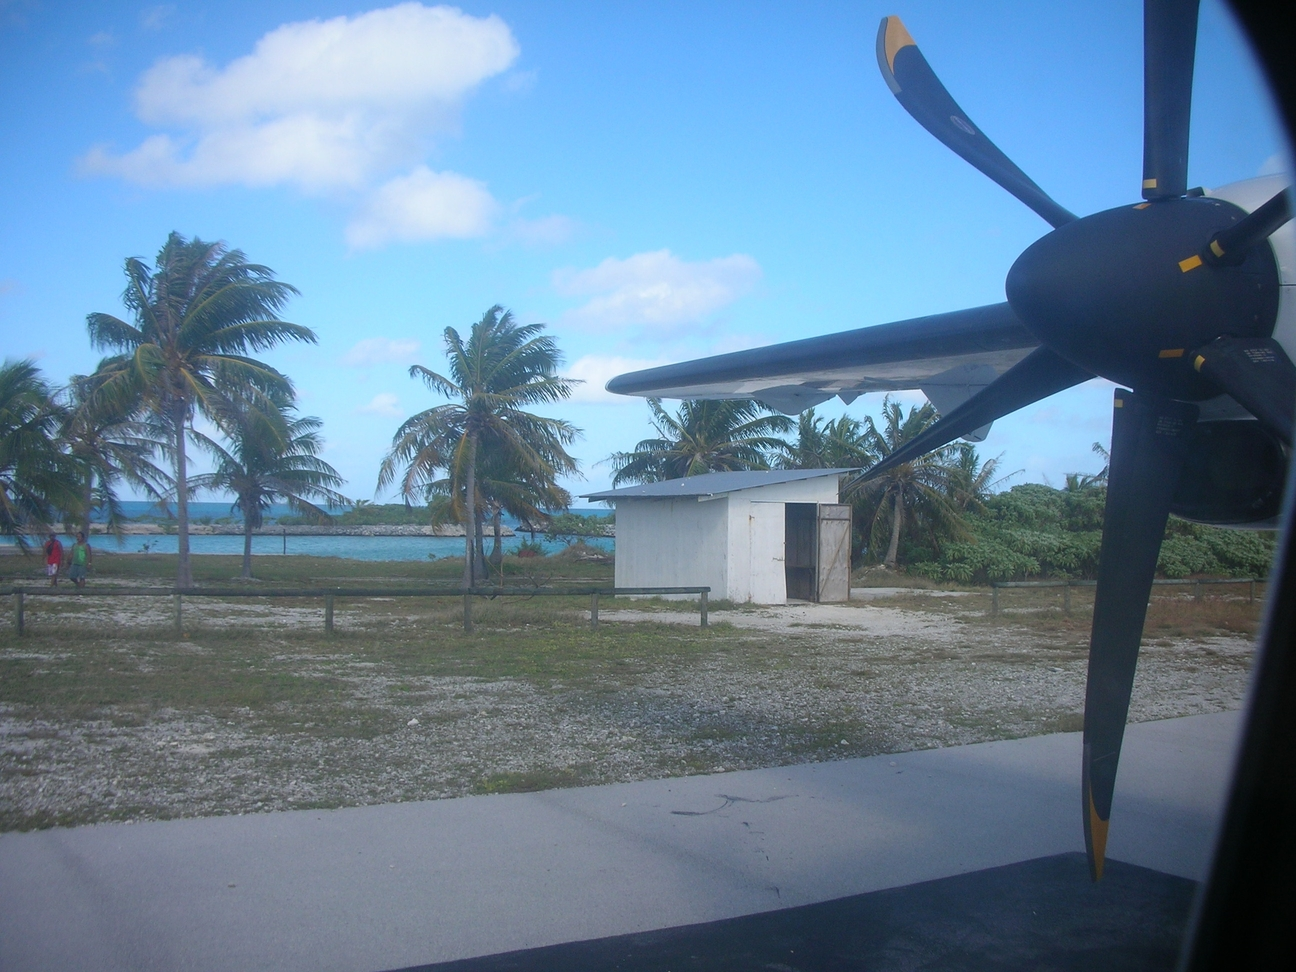 Photo of Arutua Airport by Patrick Boy